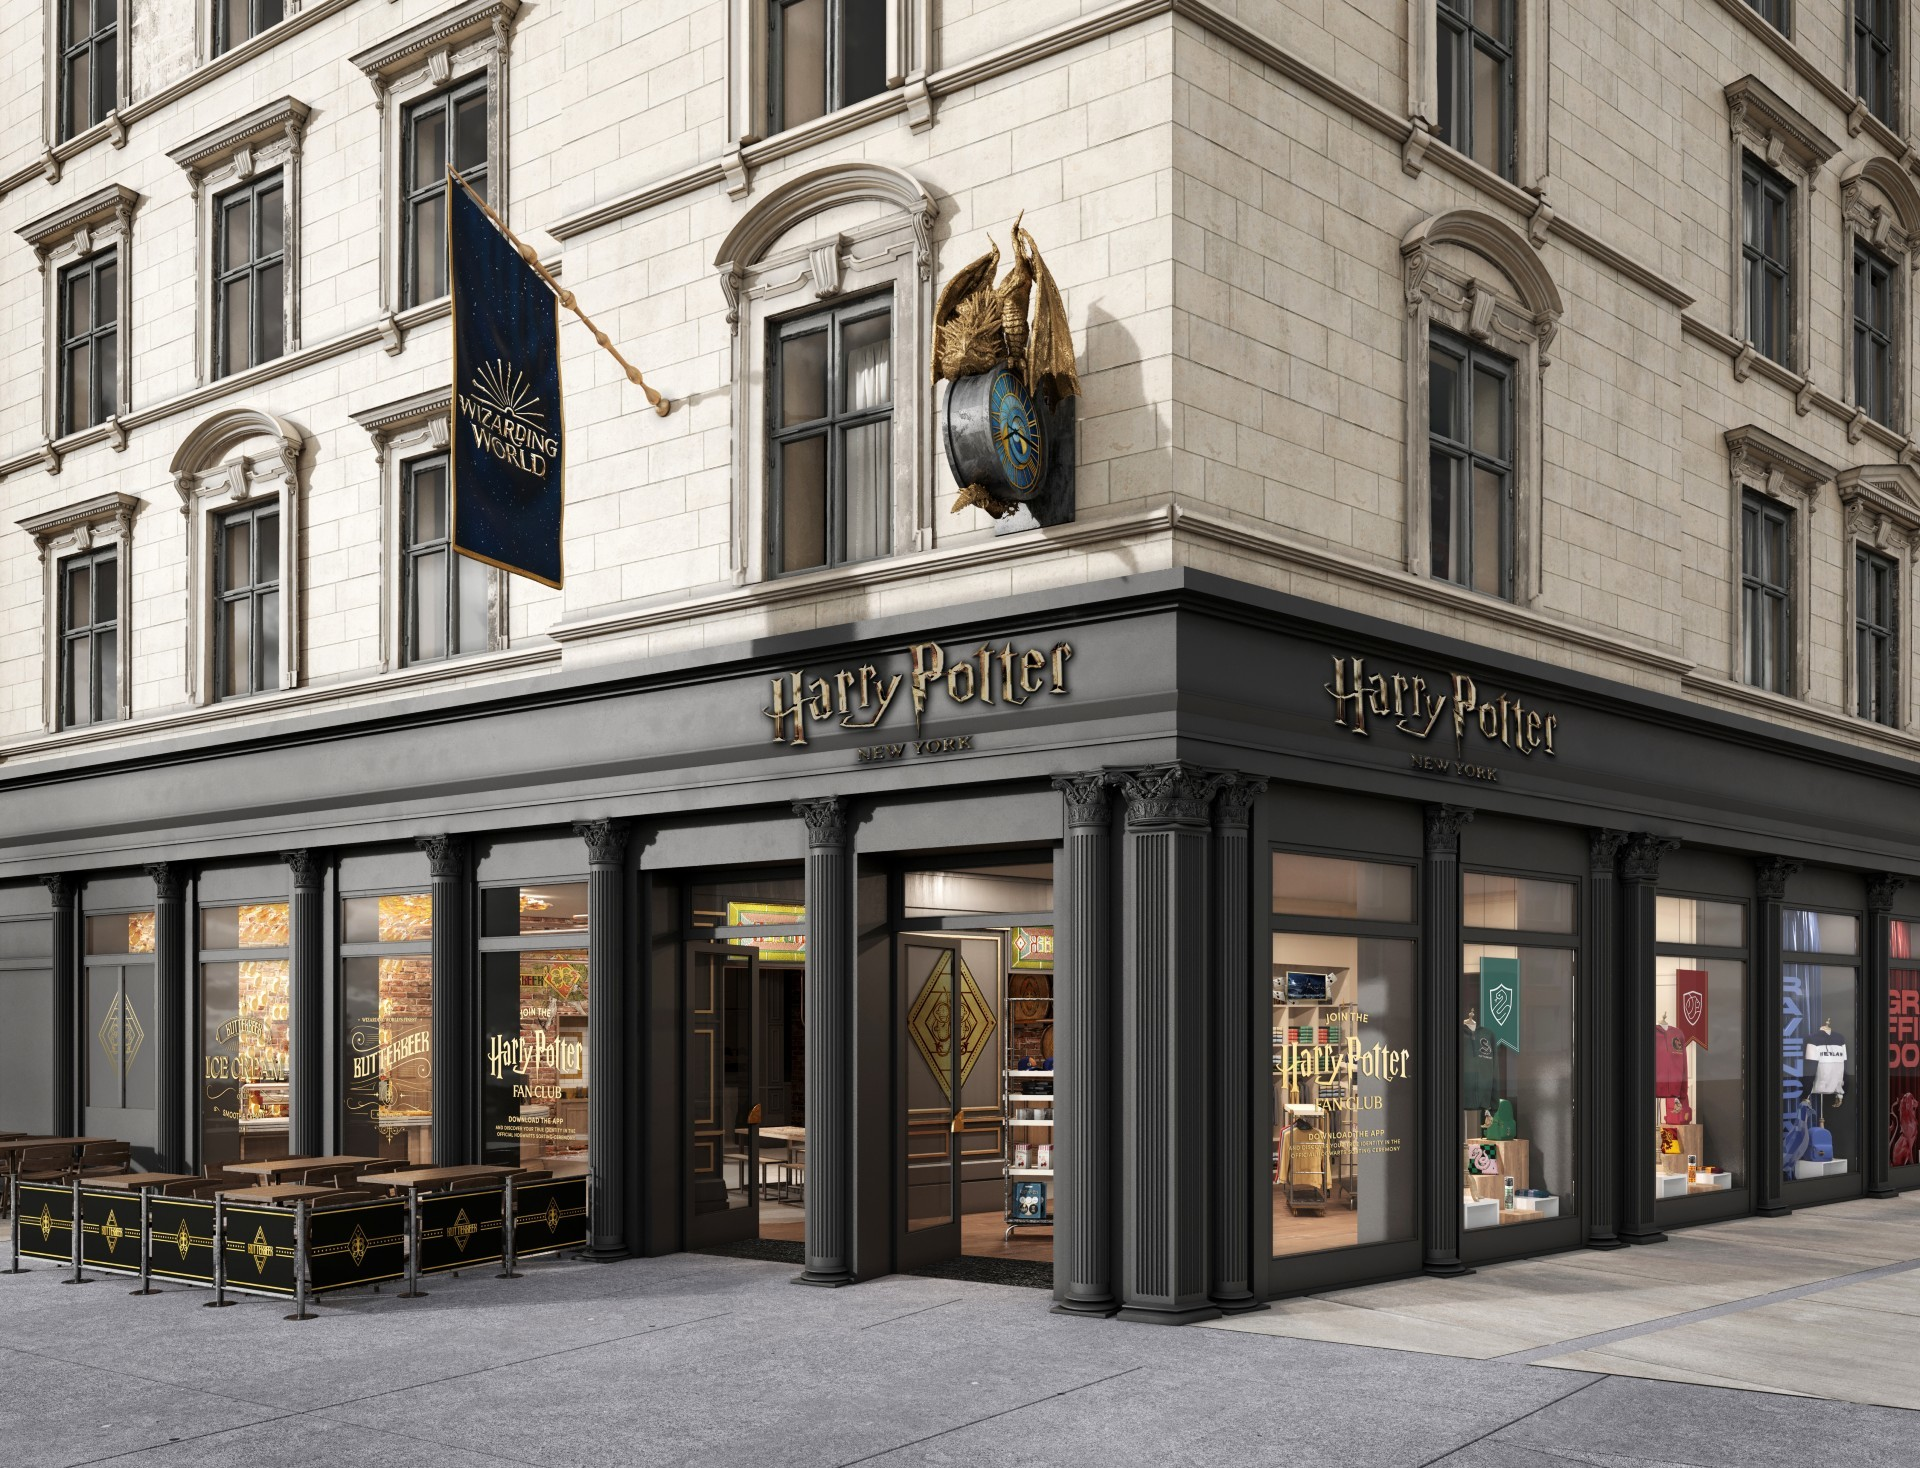 Harry Potter flagship store NYC